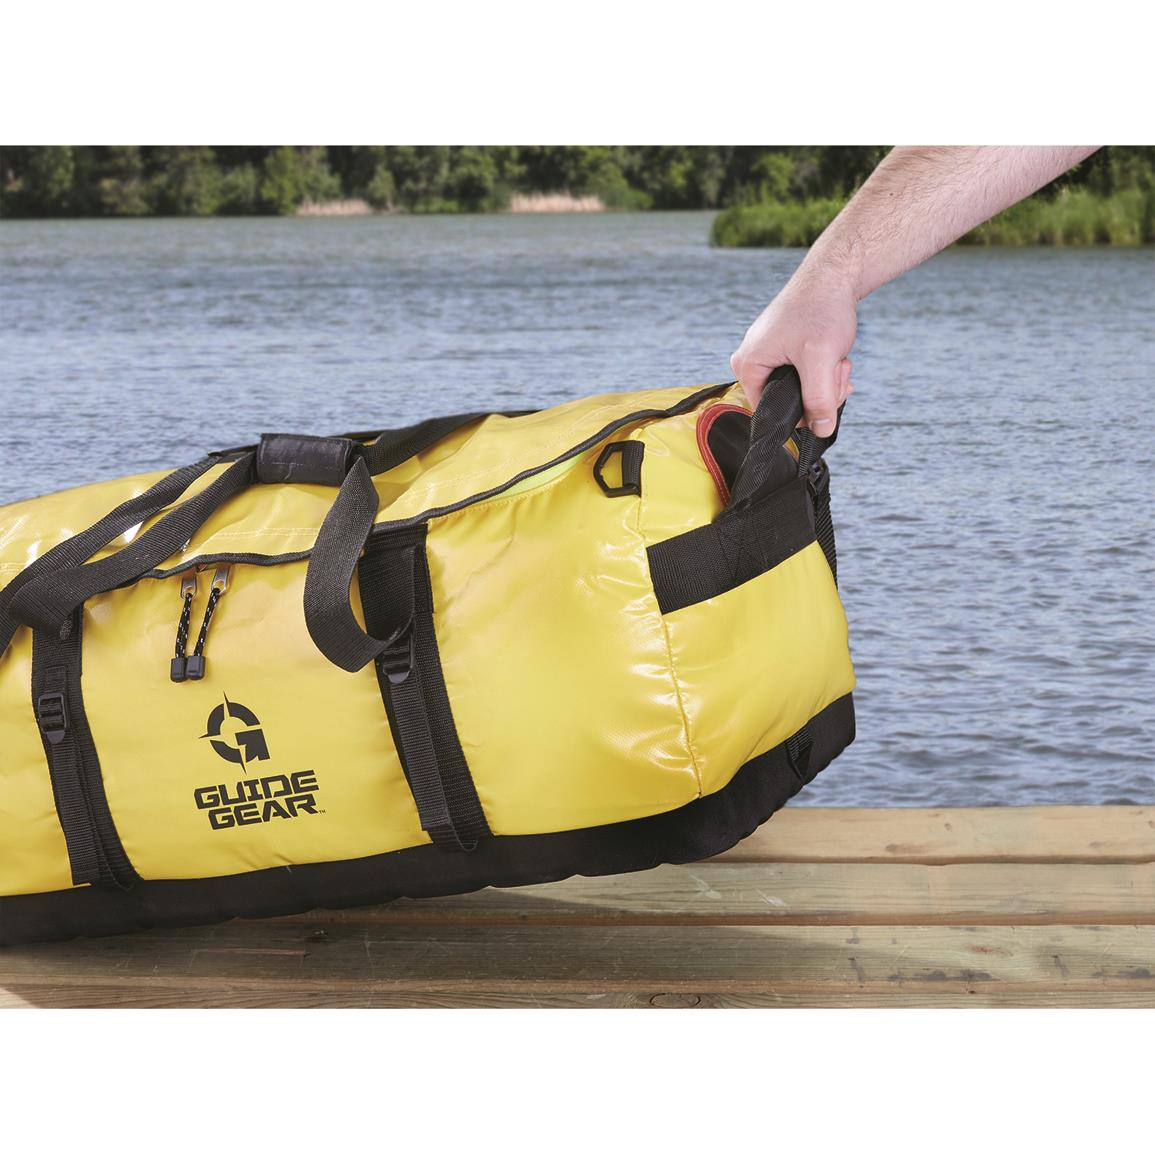 Waterproof-Floating-Duffel-Bag-Boat-Canoe-Kayak-Jet-Ski-Large-Dry-Pack-Sports thumbnail 3